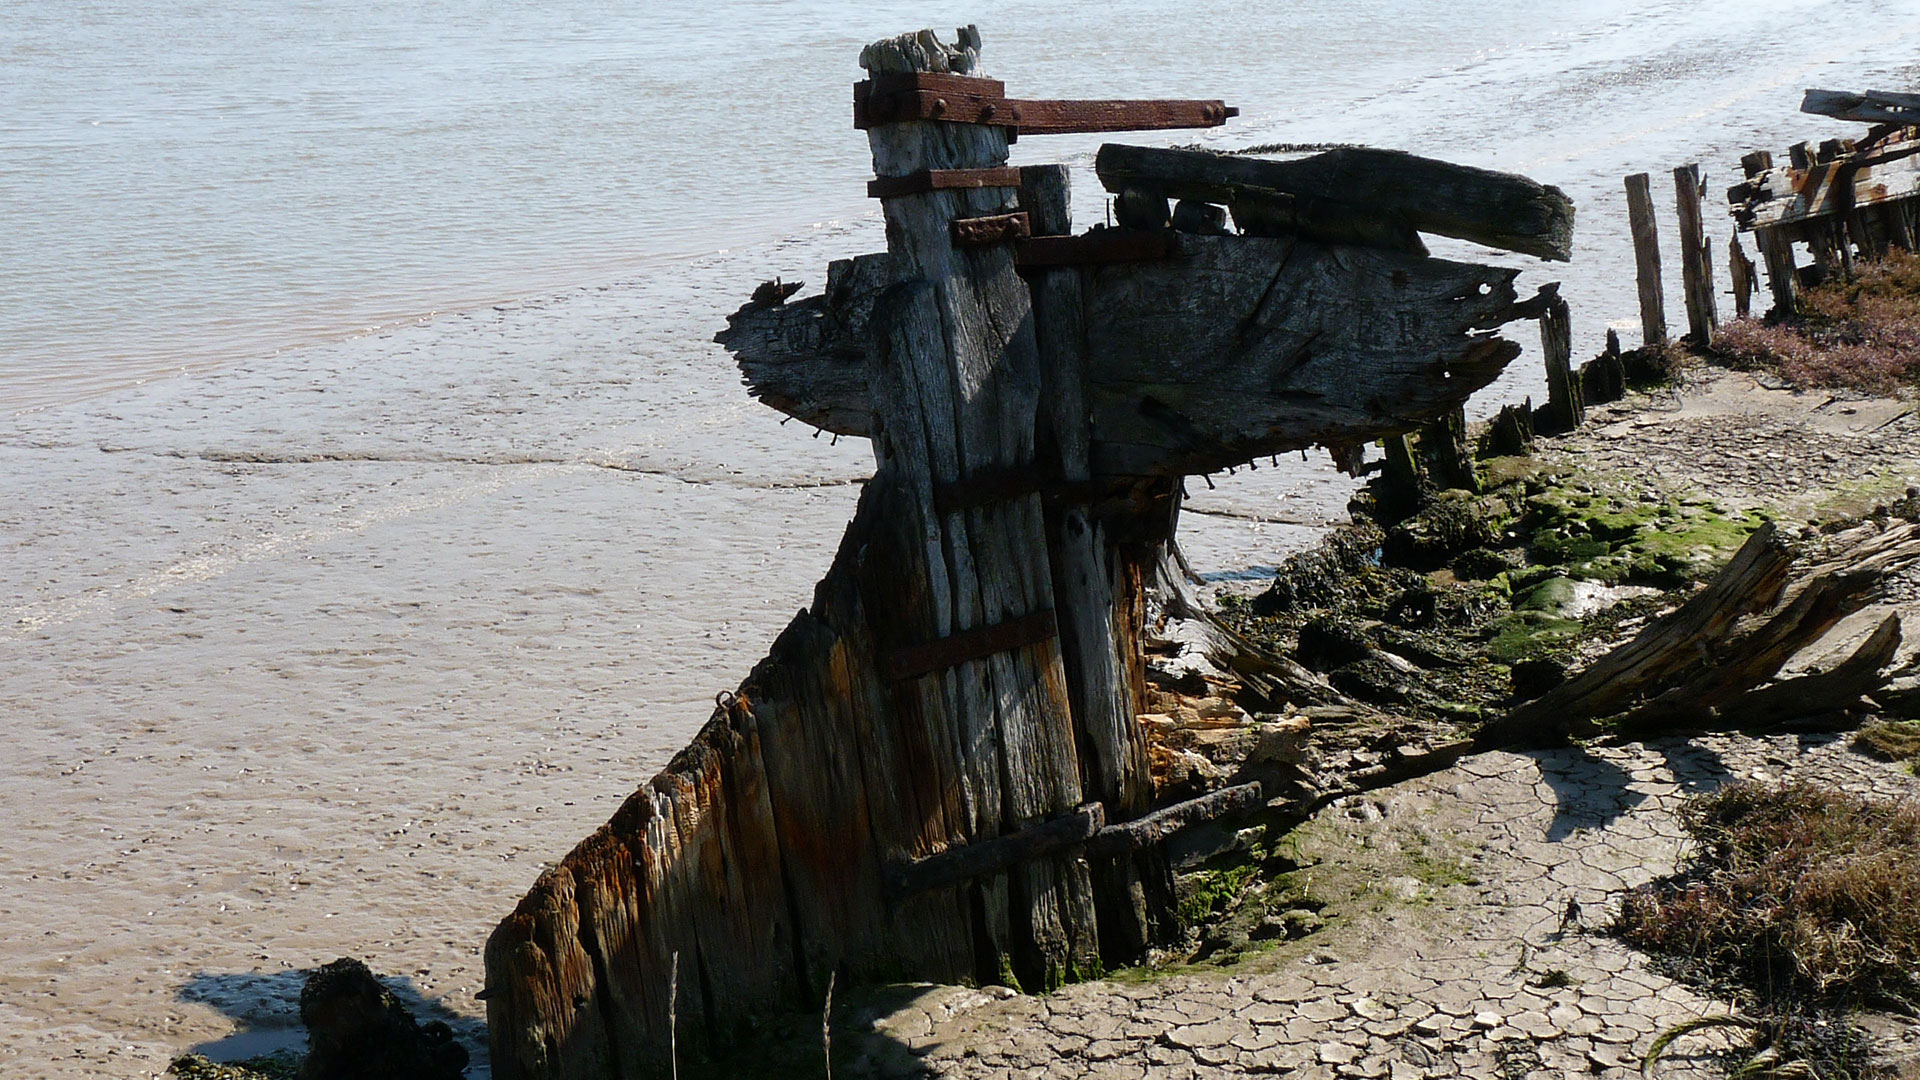 The Demise Of Sail - Barge At Orfordness